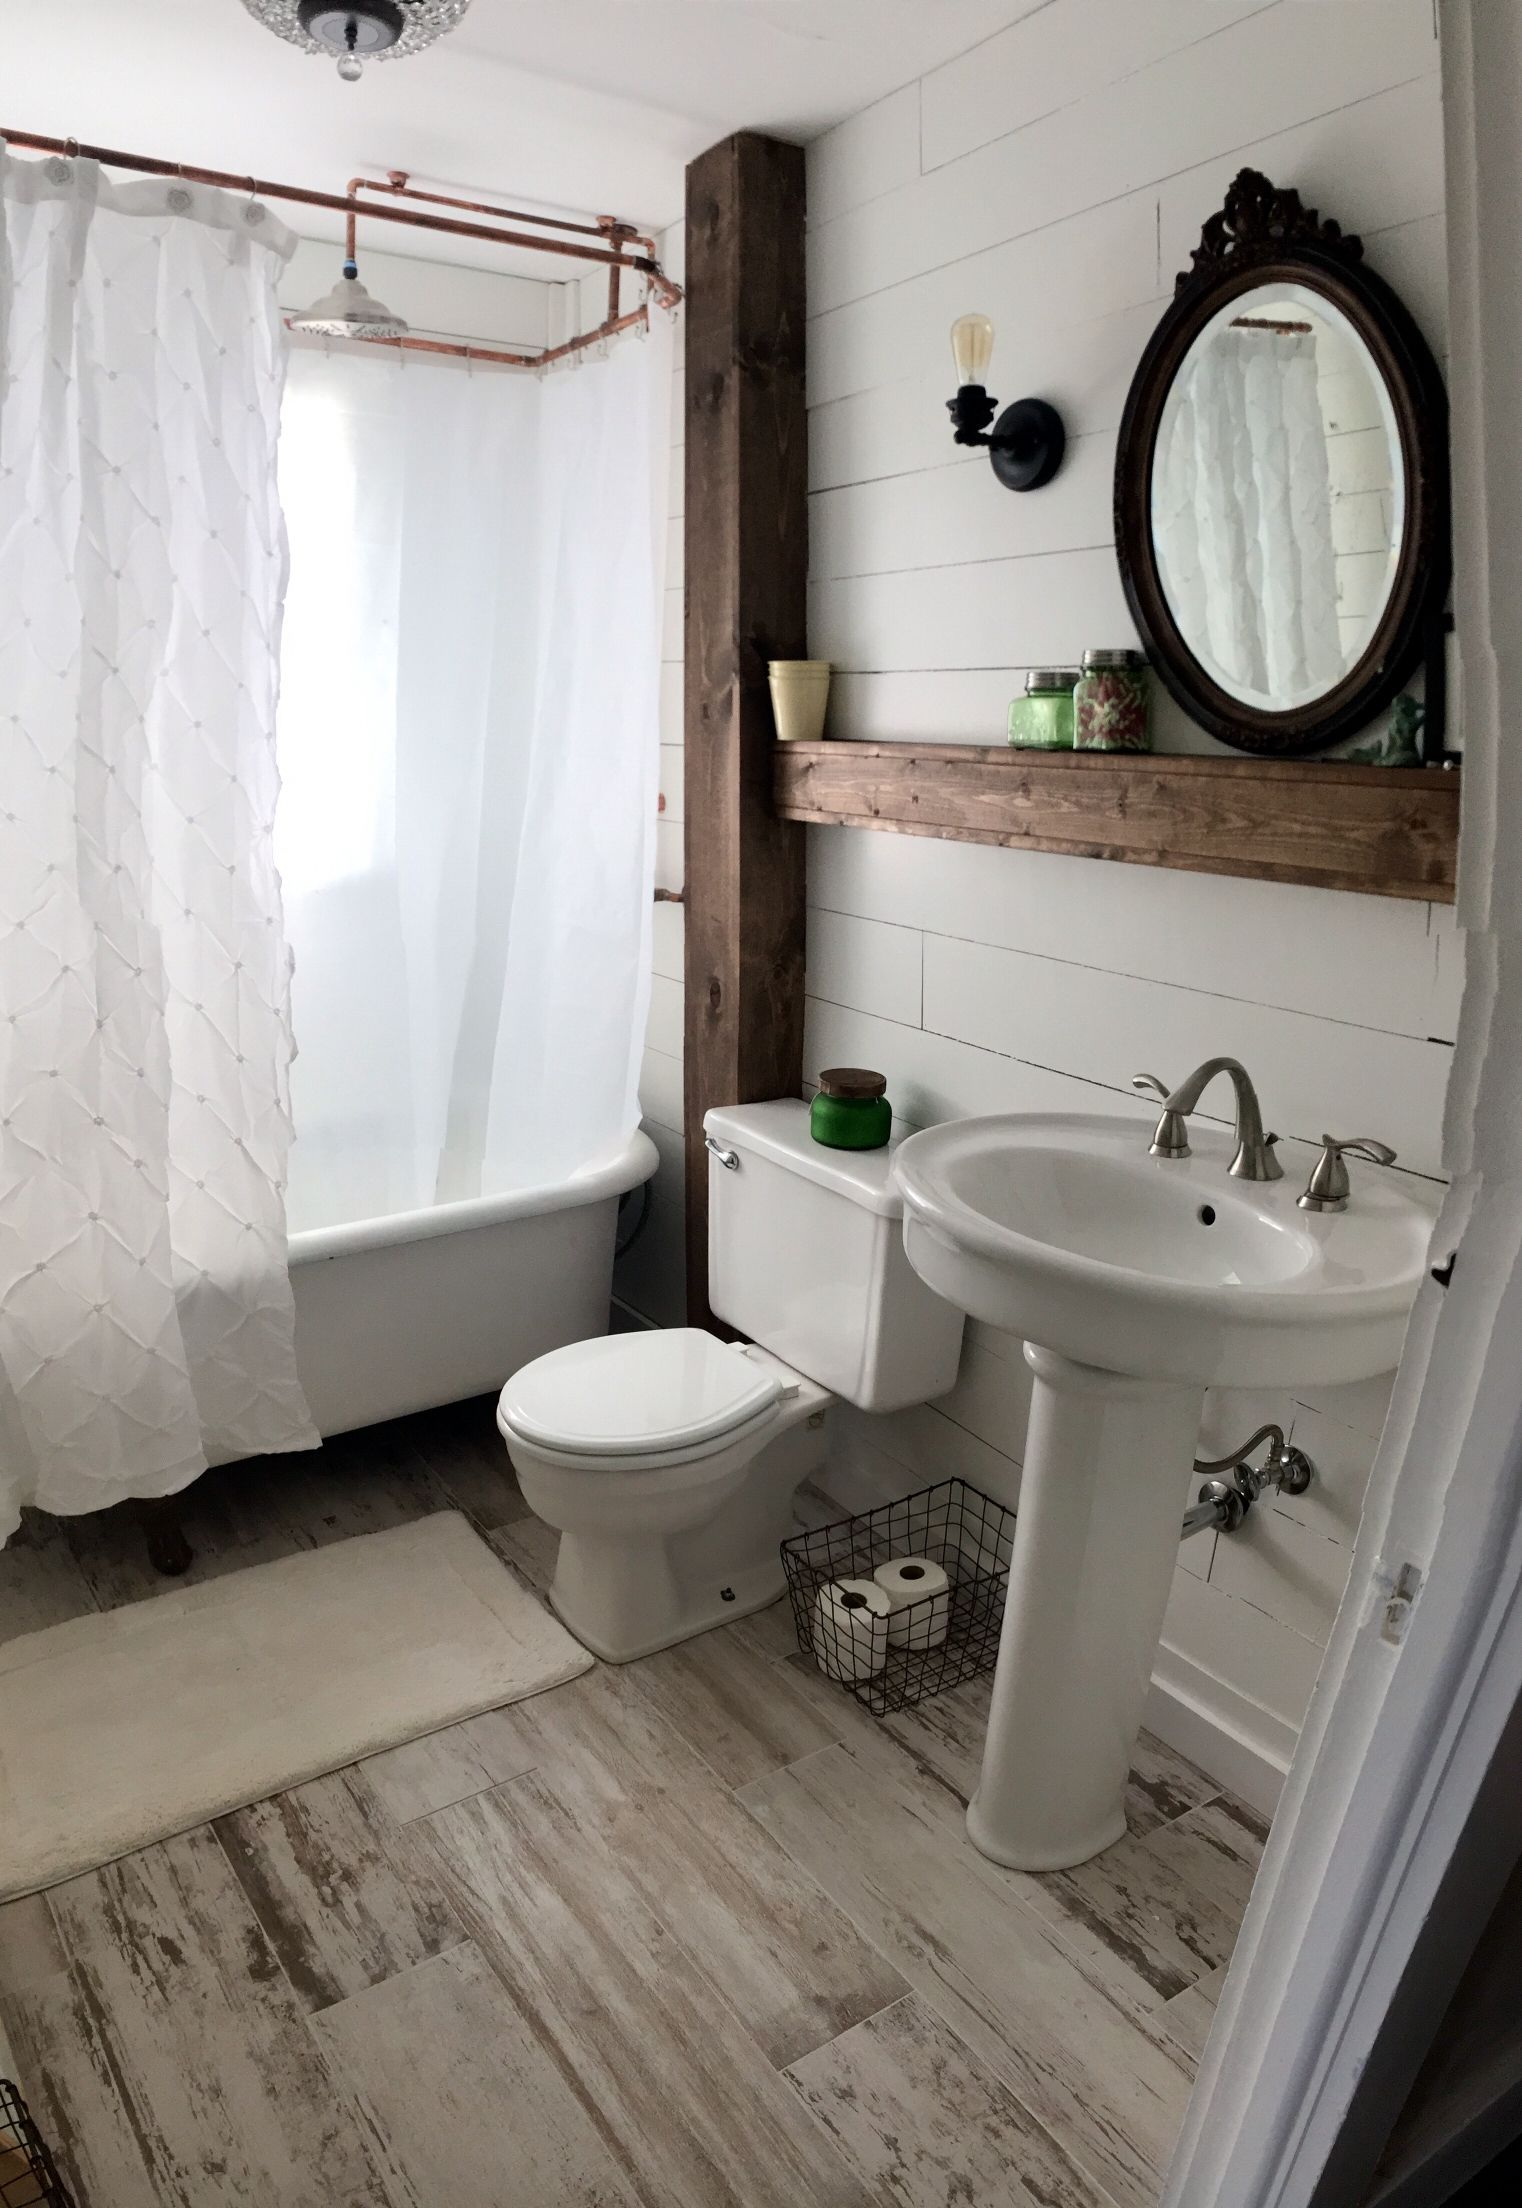 Basement Bathroom Ideas On Budget Low Ceiling And For Small Space Check It Out Cabin